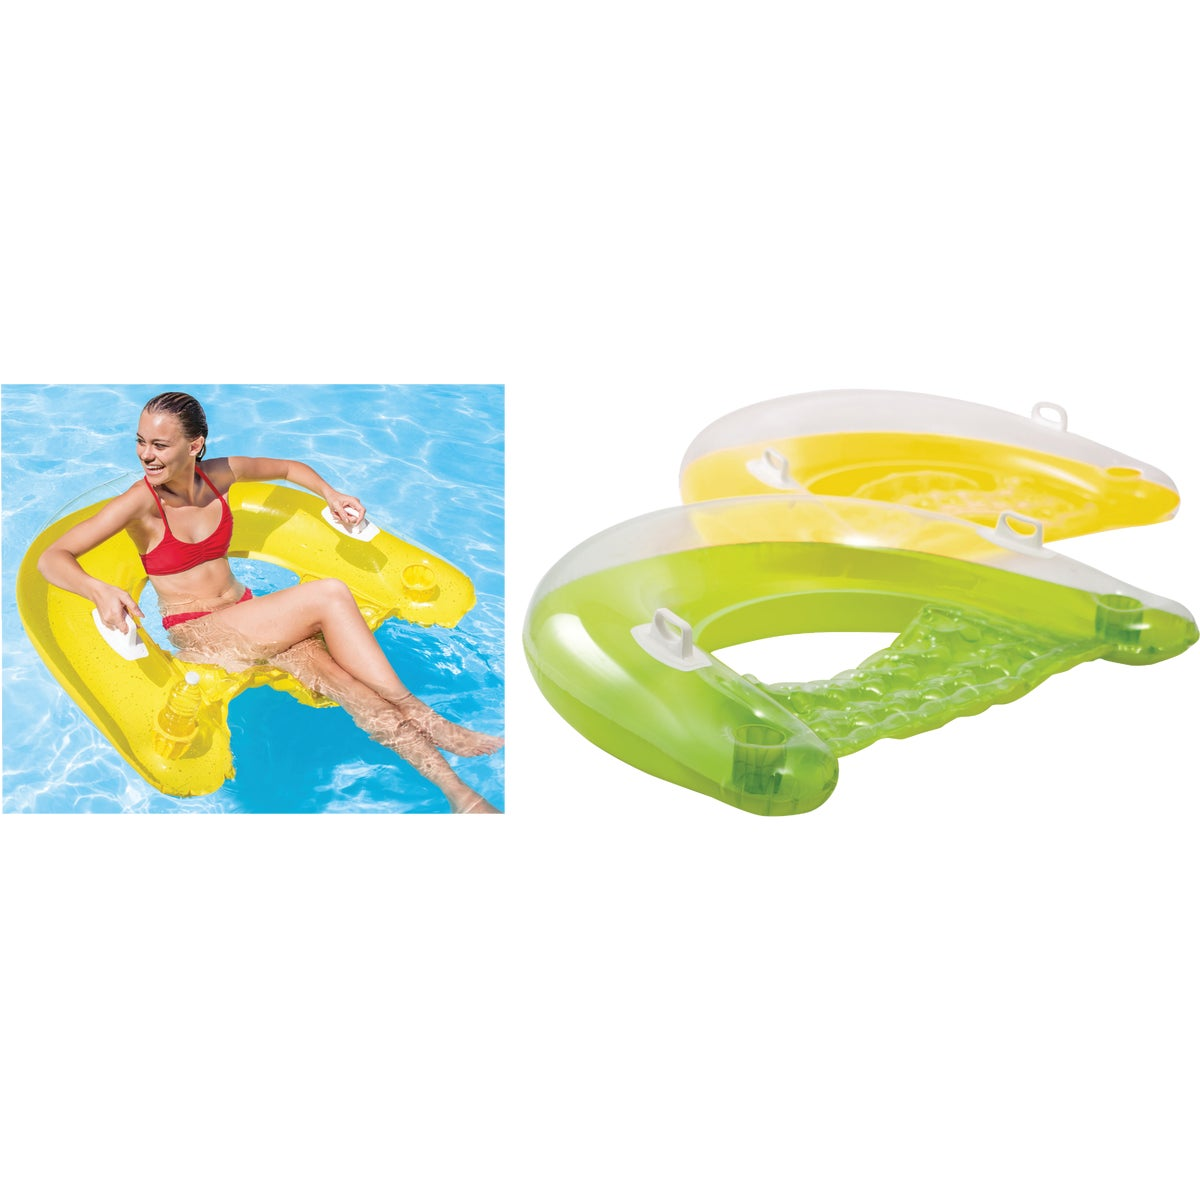 SIT N FLOAT - 58859EP by Intex Recreation